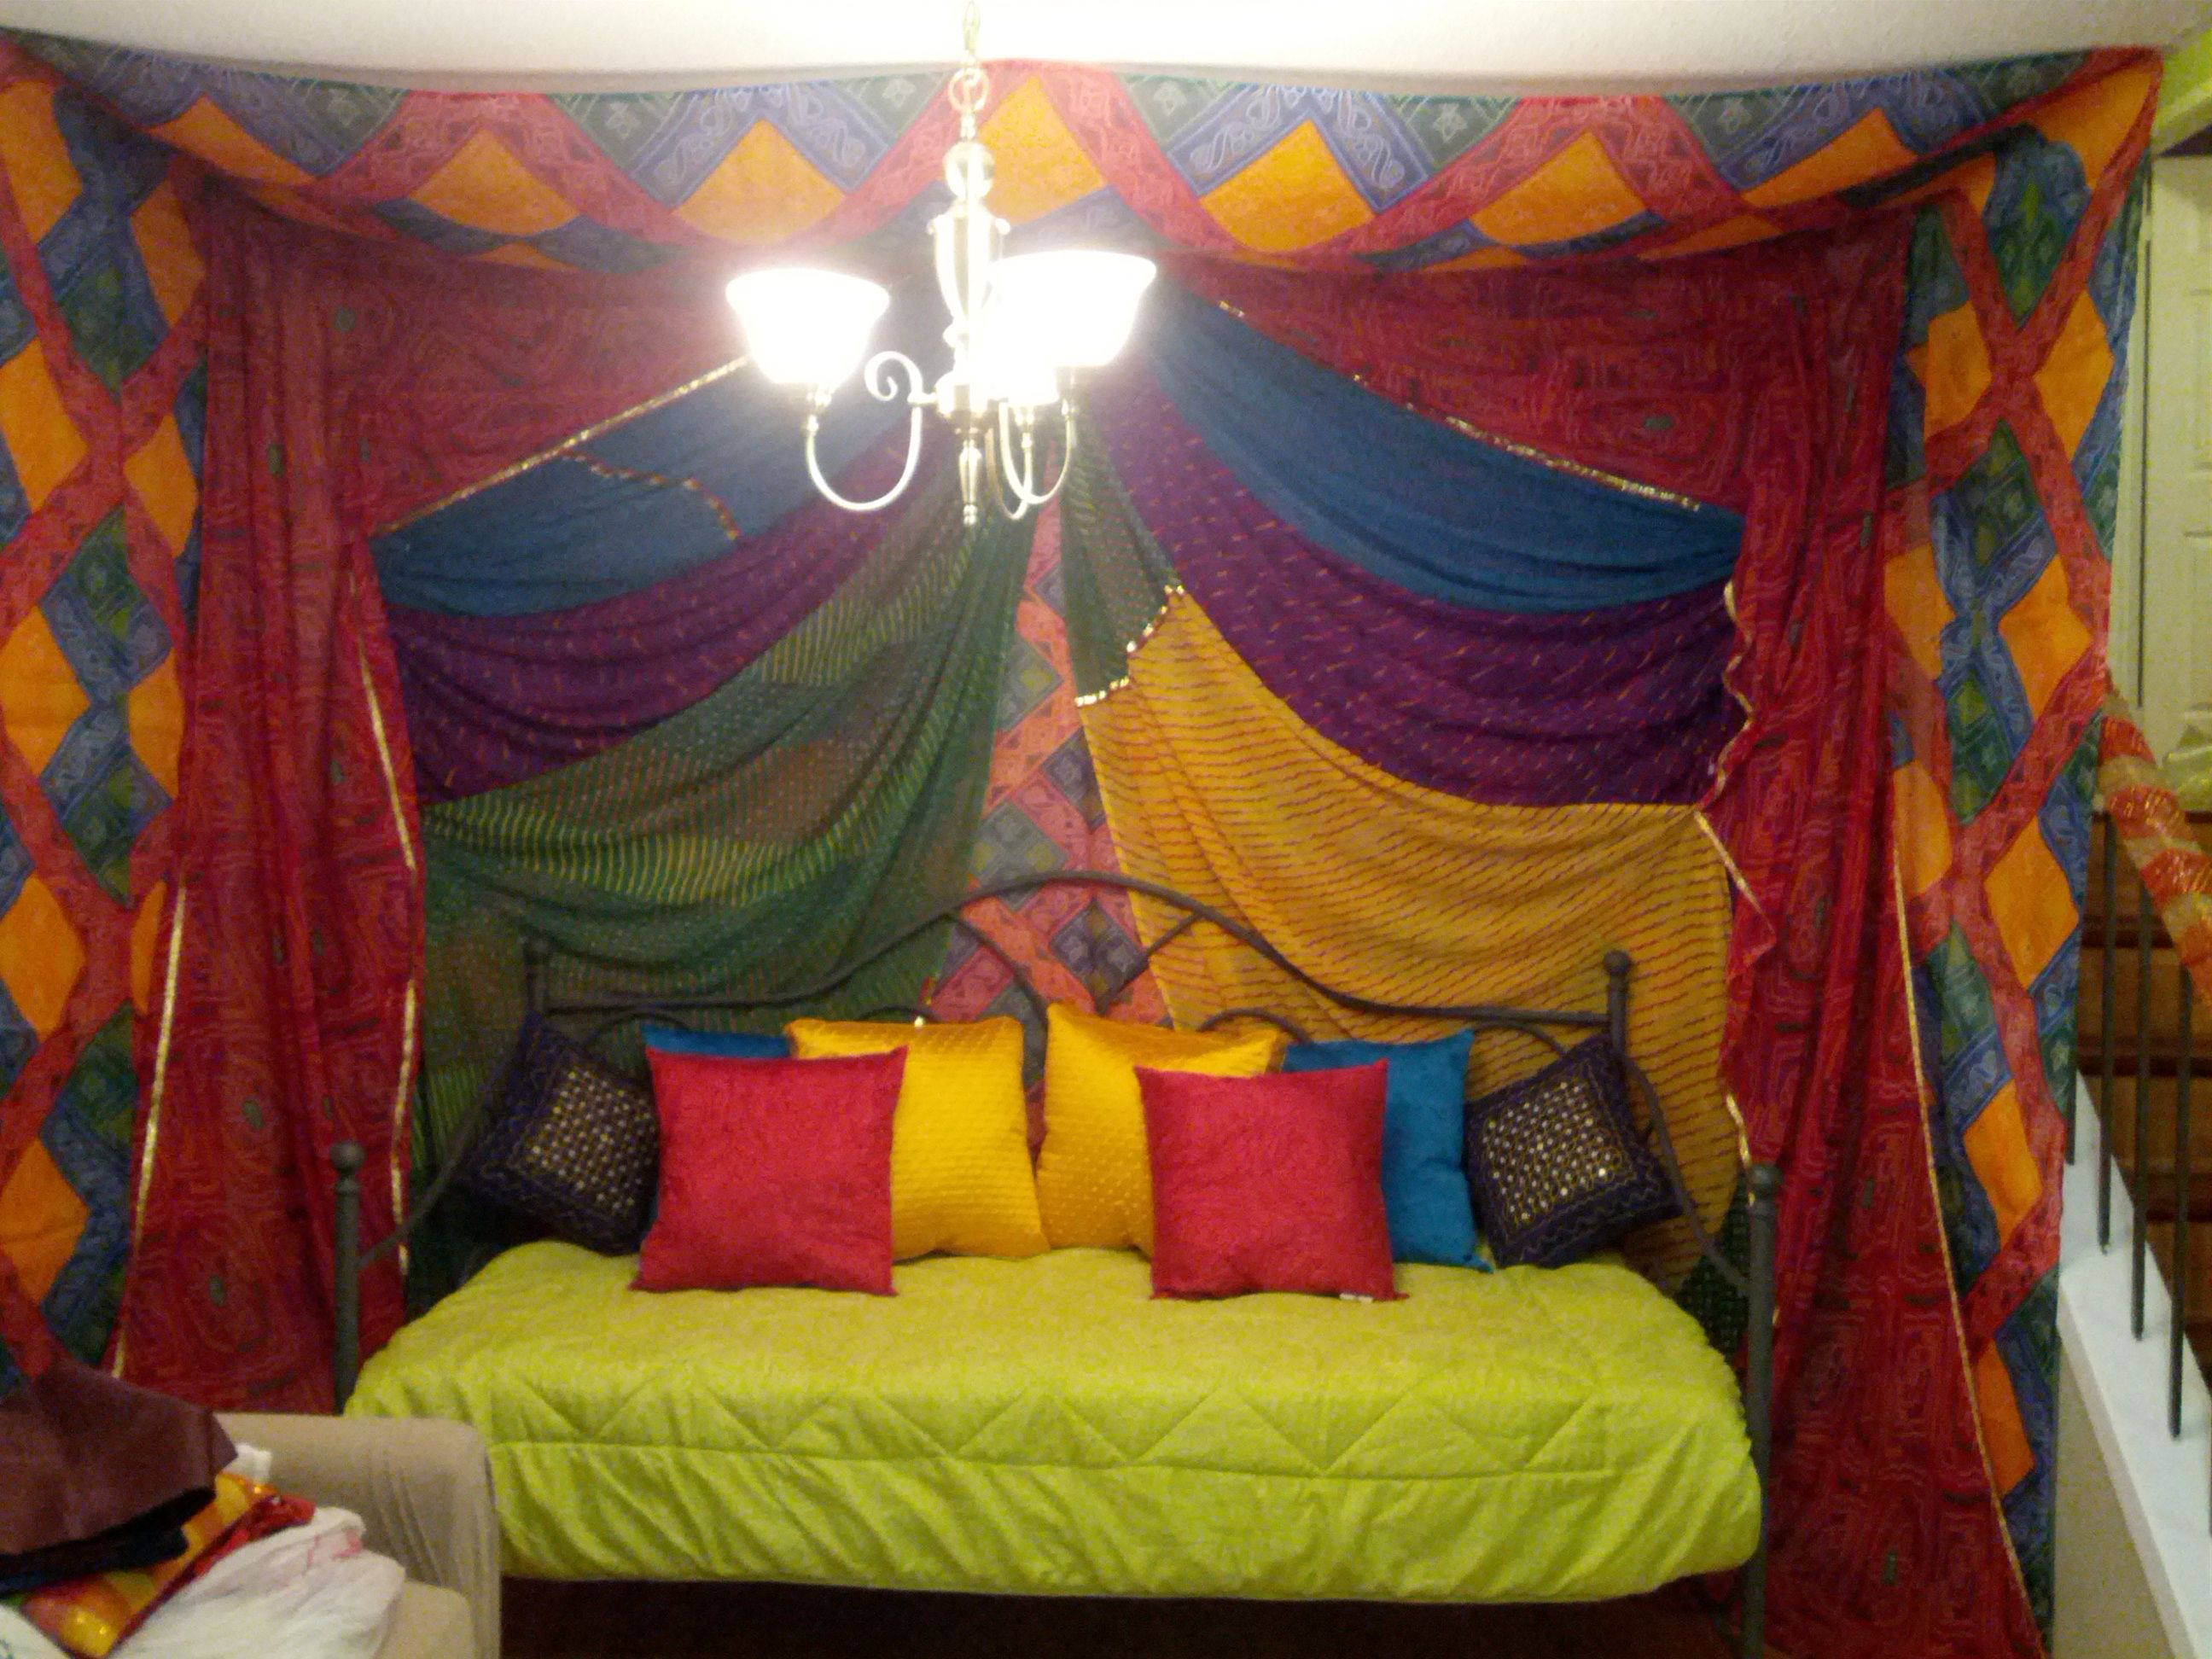 Indian wedding decor at home for a rajasthani inspired for At home wedding decoration ideas